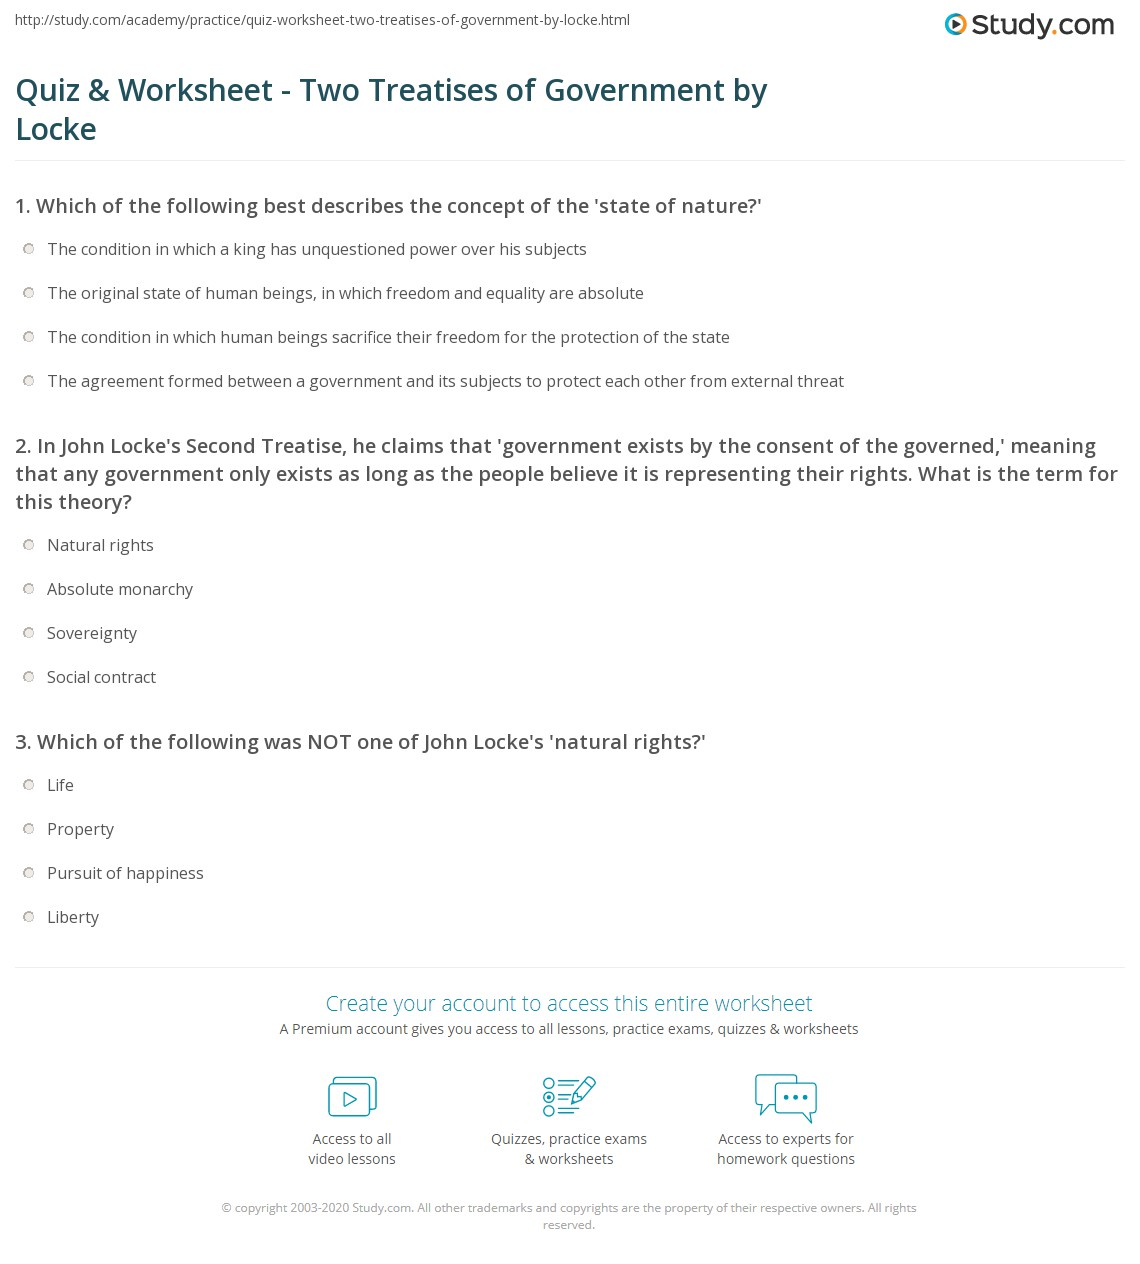 Quiz & Worksheet - Two Treatises of Government by Locke | Study.com